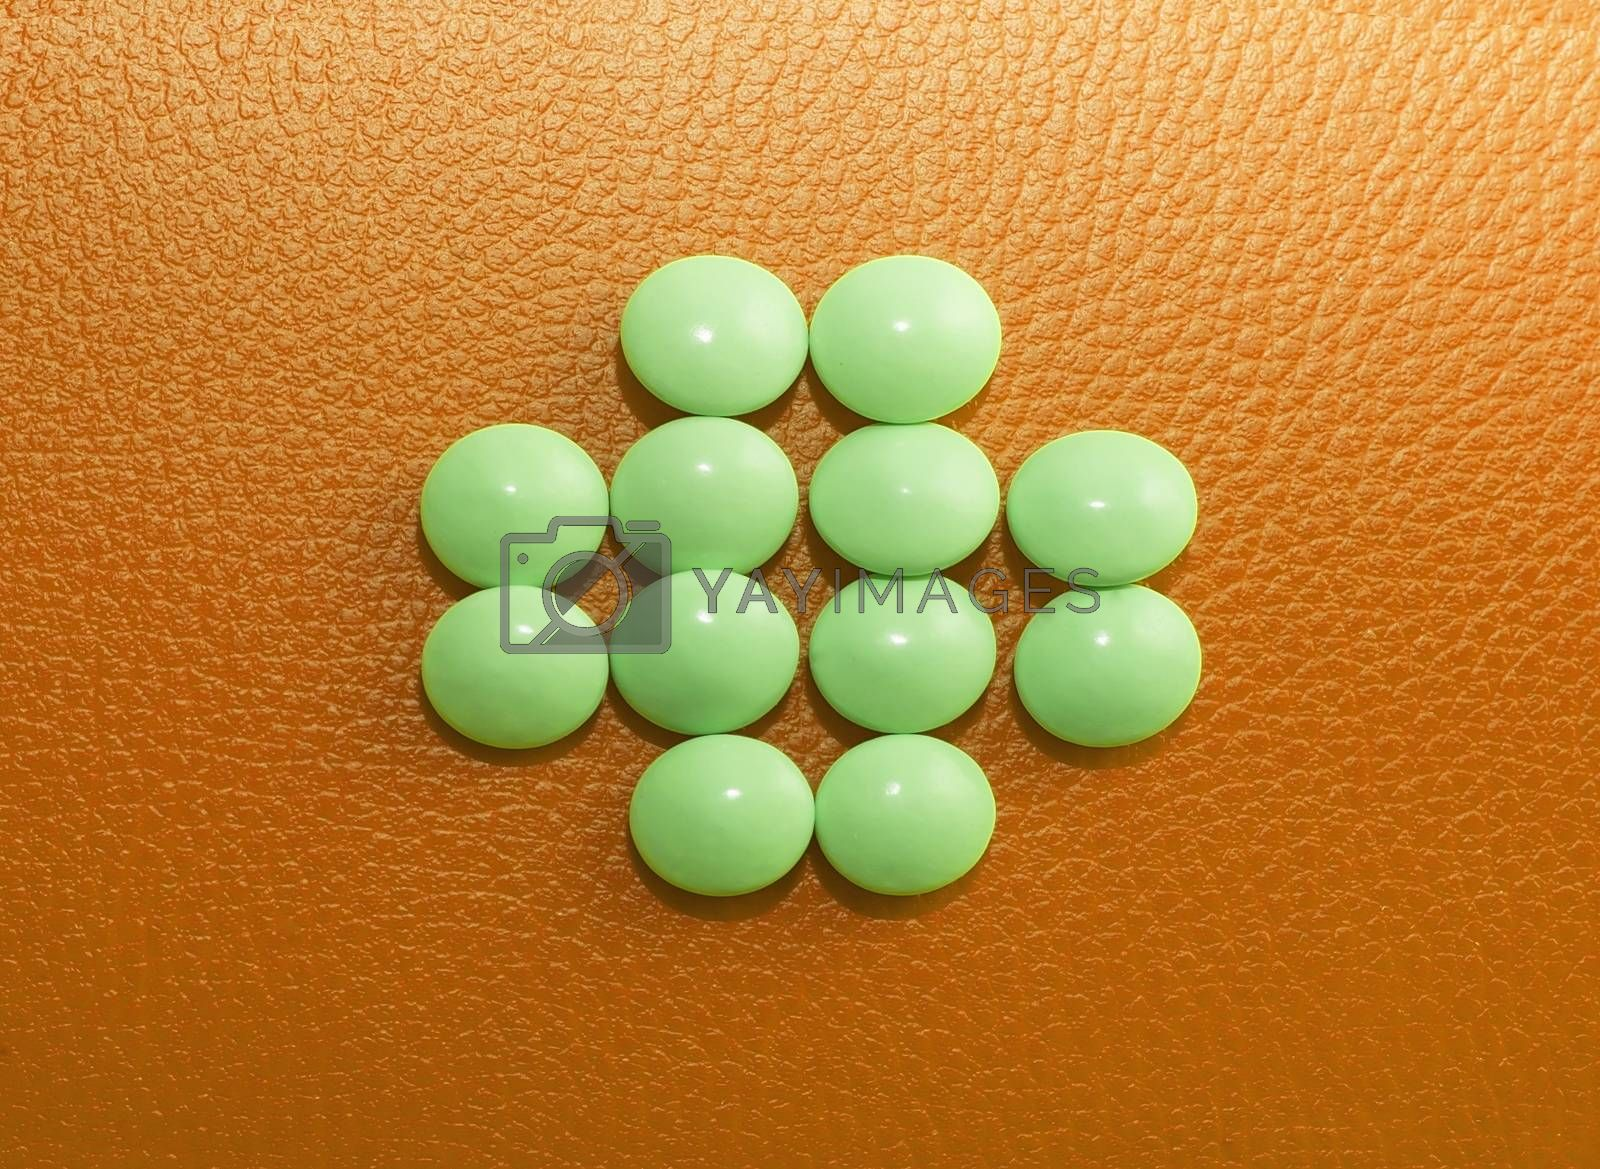 tablets, pills and drugs, medicines, drugs - colorful medications on a colored background, medicine and health